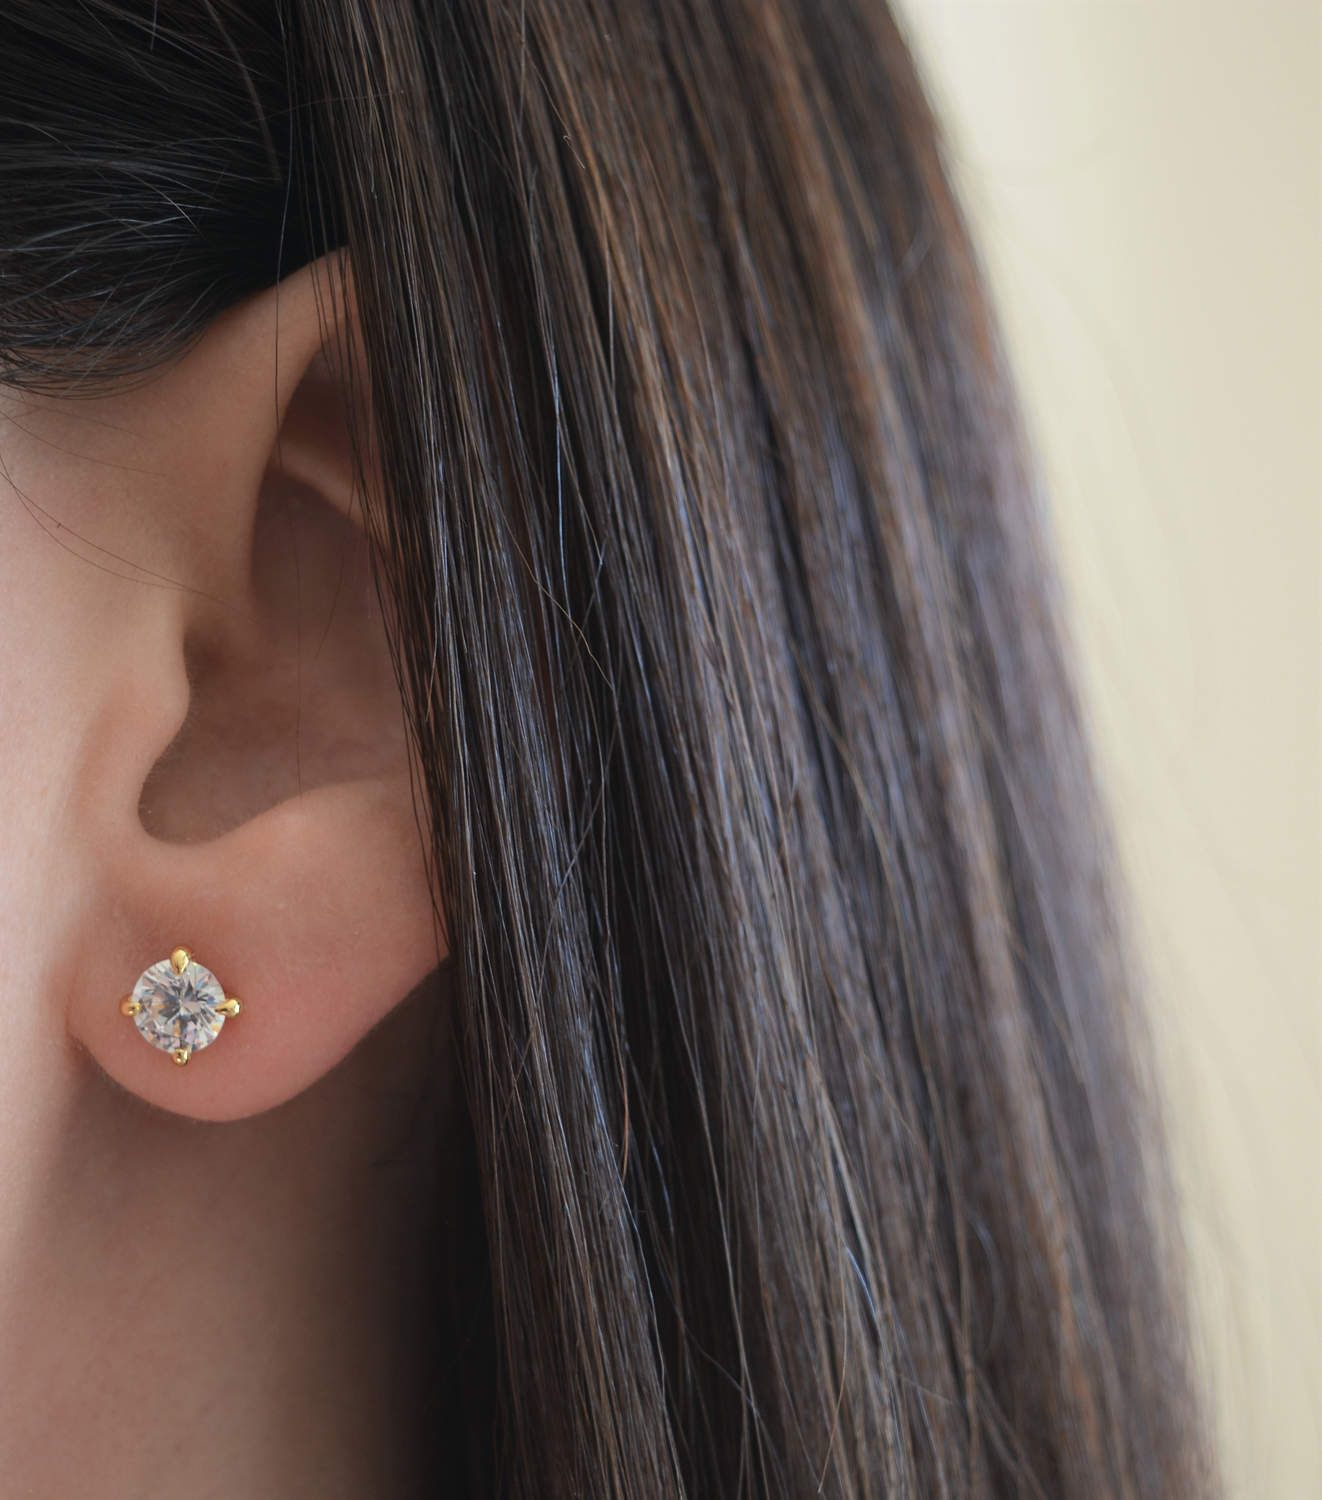 Gold  Zirconia Double Rounds Earring Ear Stud Over Genuine 925 Sterling Silver